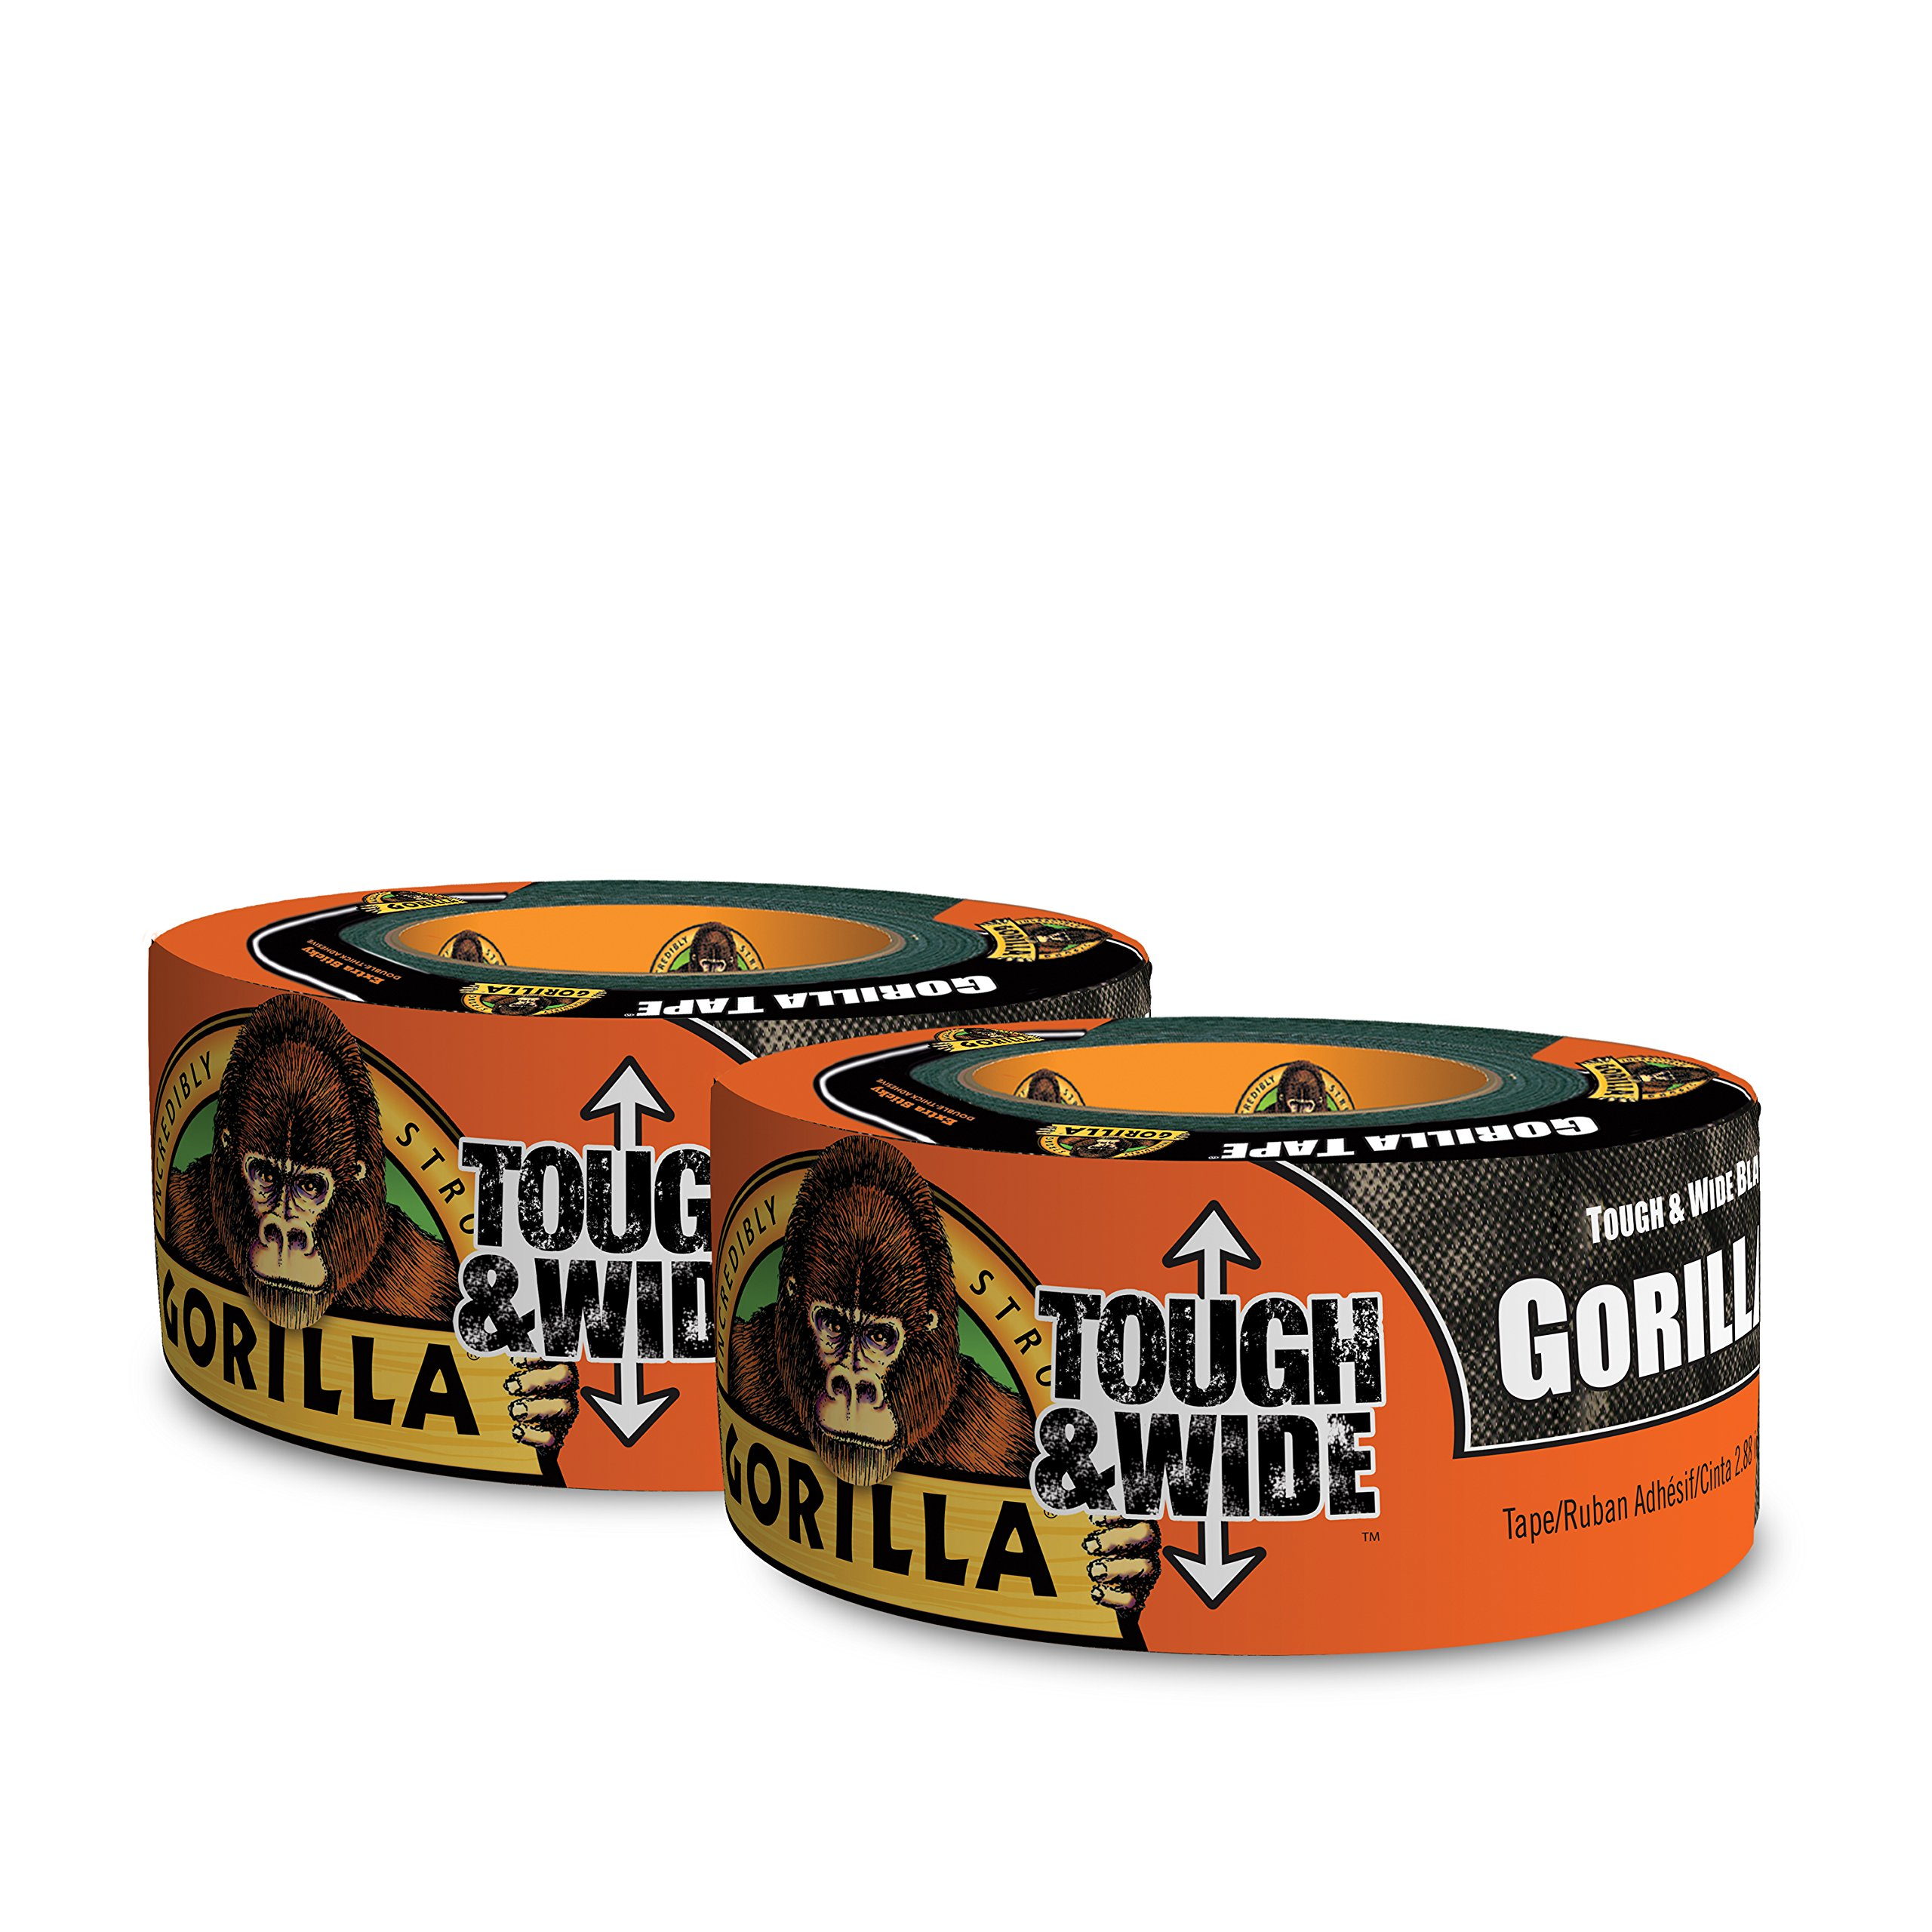 Gorilla Tape, Black Tough & Wide Duct Tape, 2.88'' x 30 yd, Black, (Pack of 2) by Gorilla